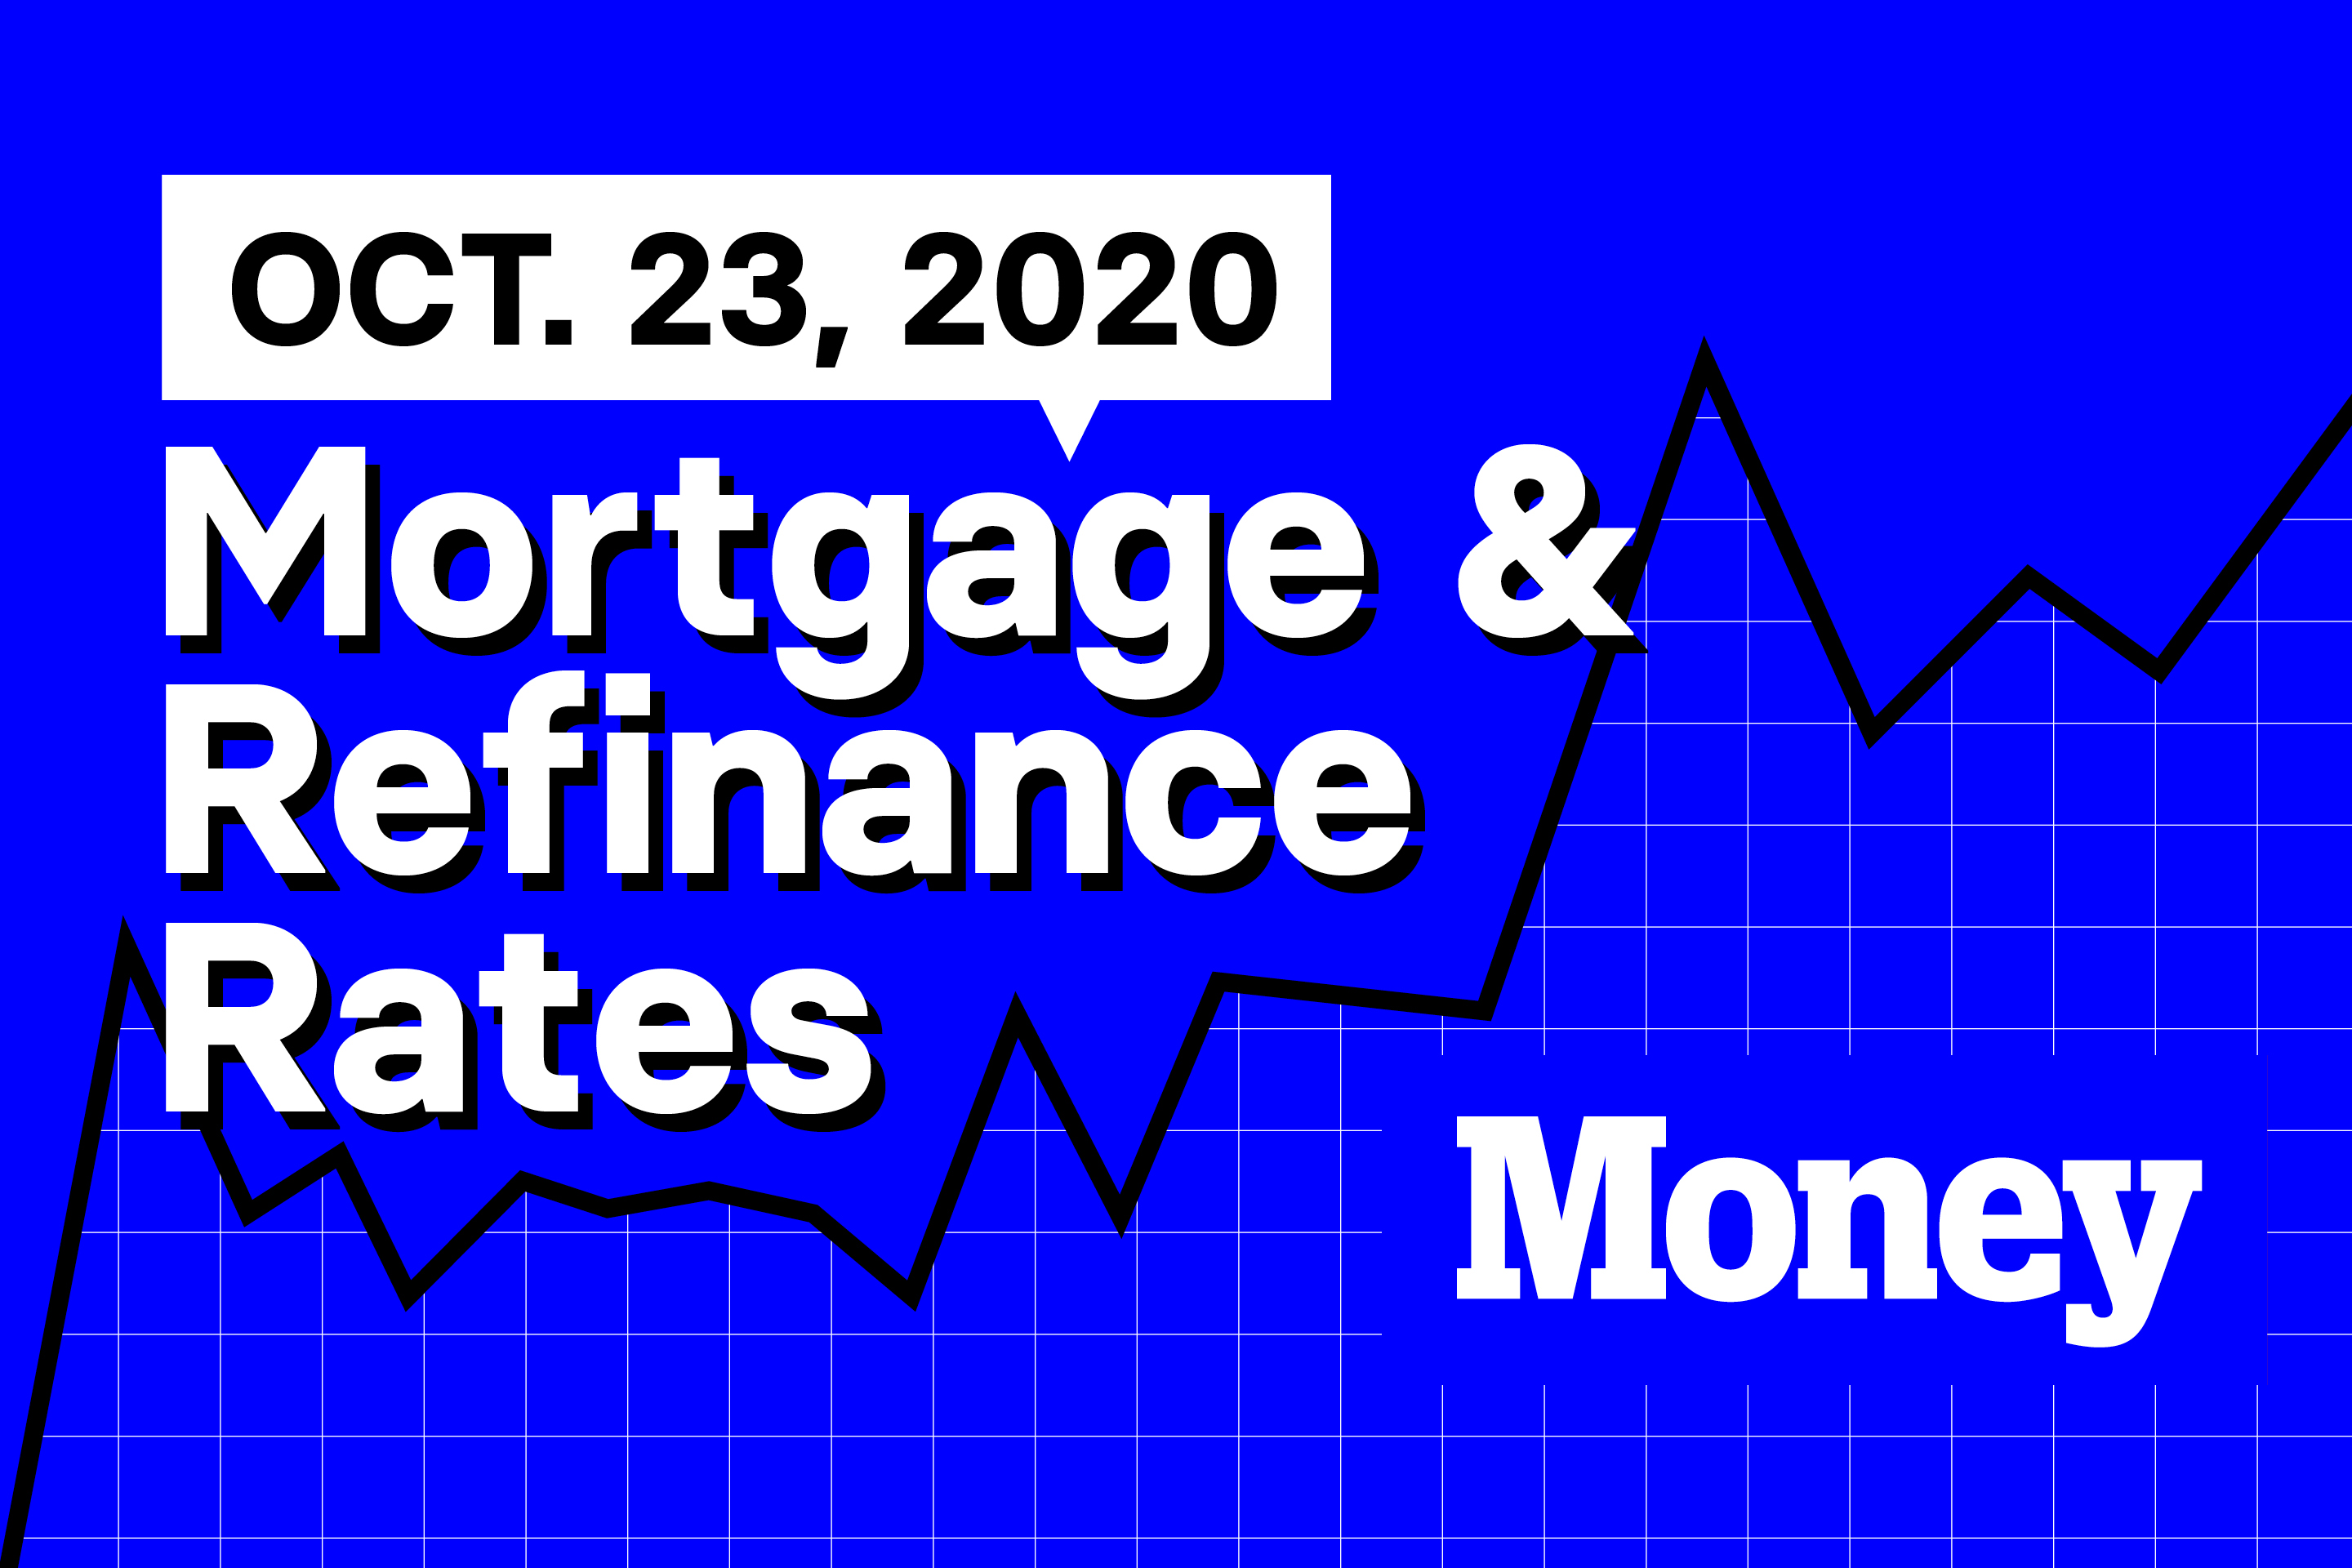 Here Are Today's Best Mortgage & Refinance Rates for October 23, 2020